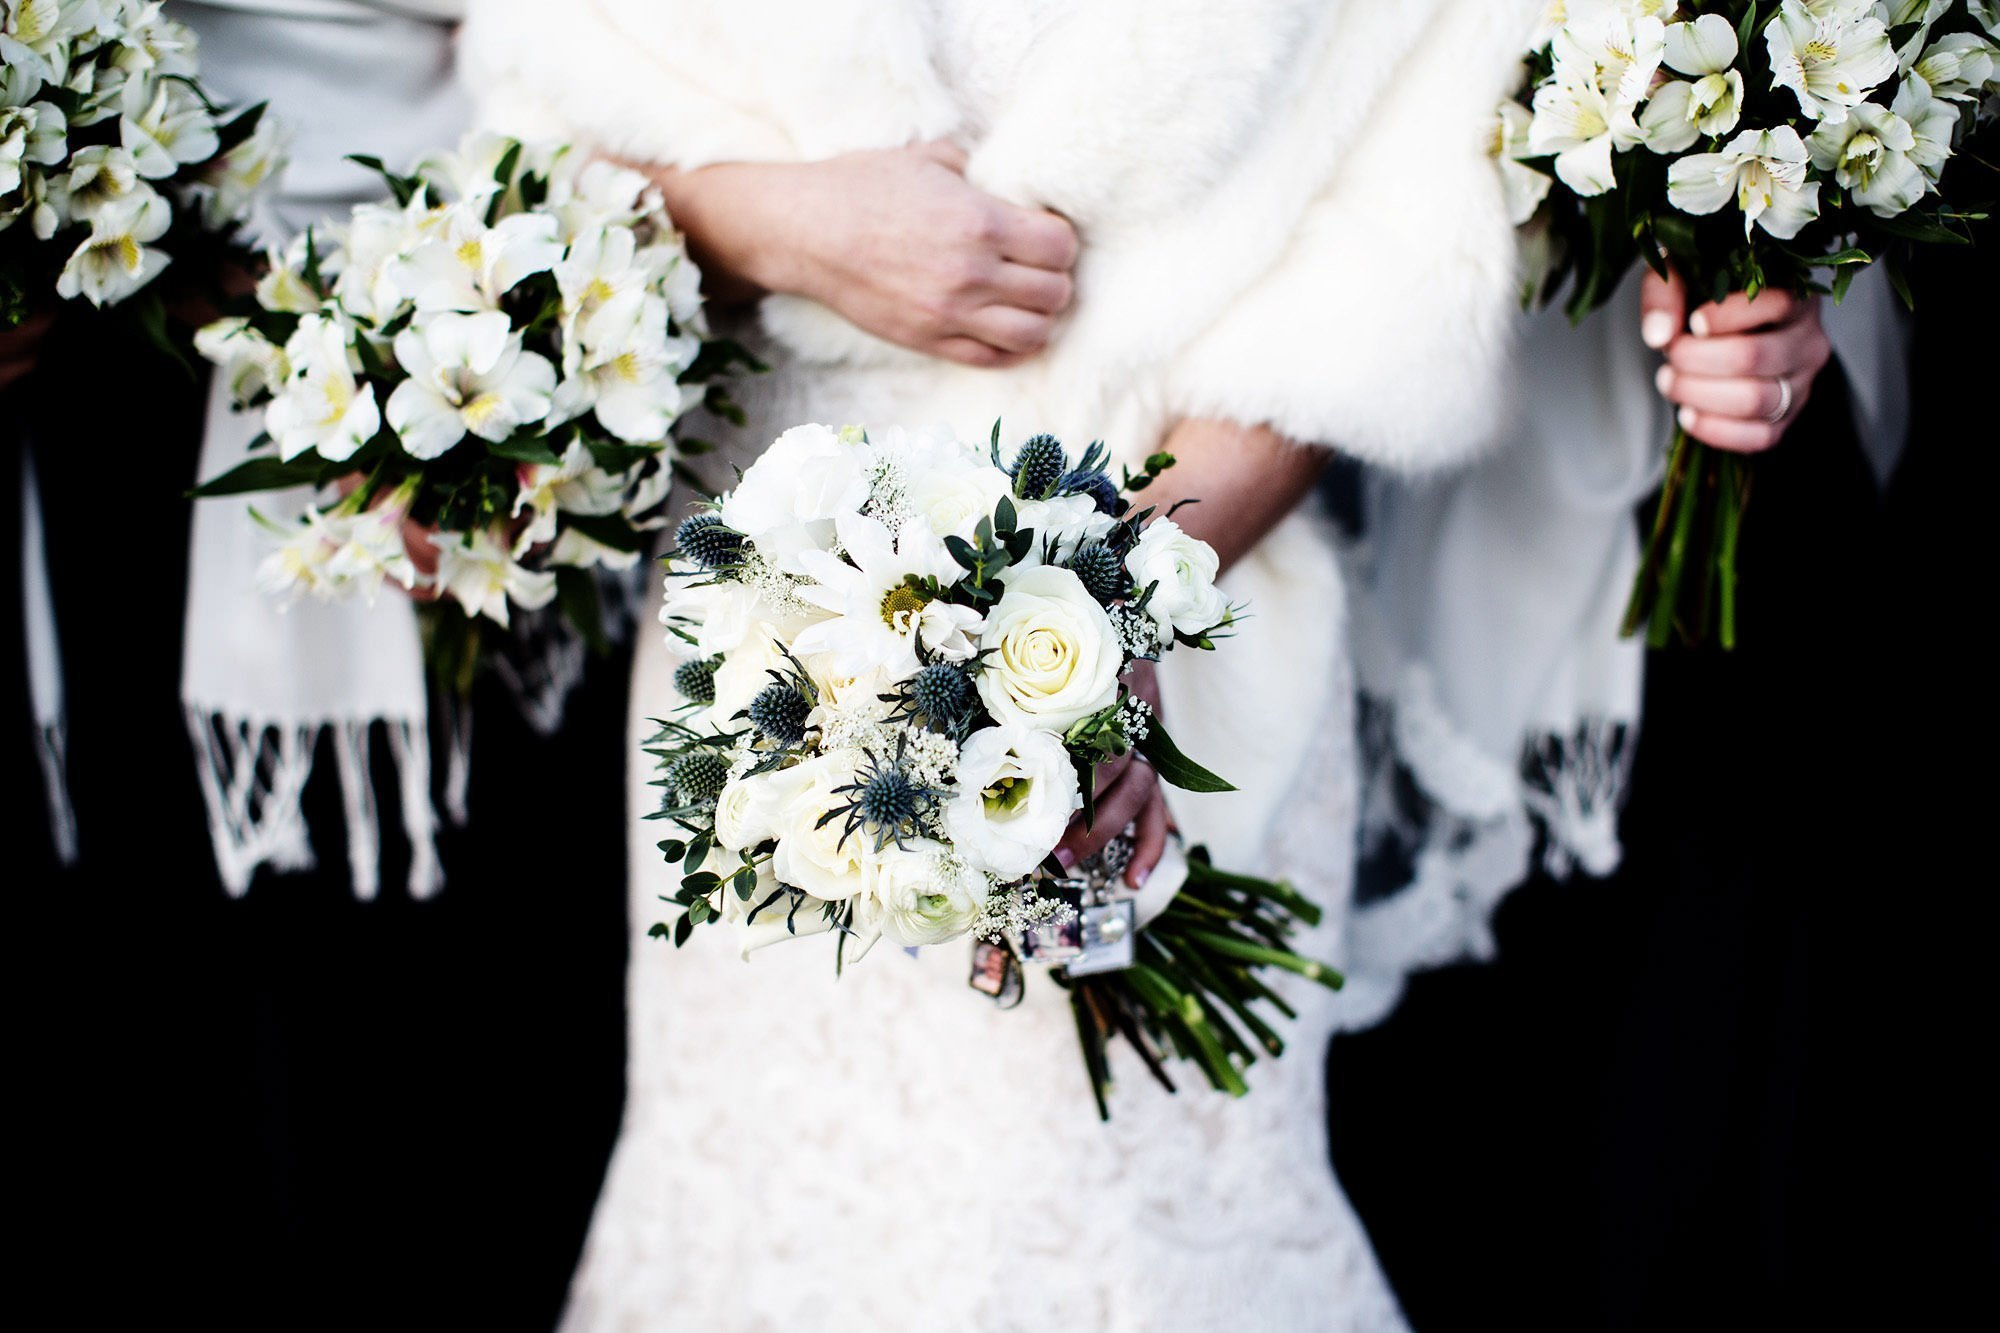 A detail of the bride's flowers.